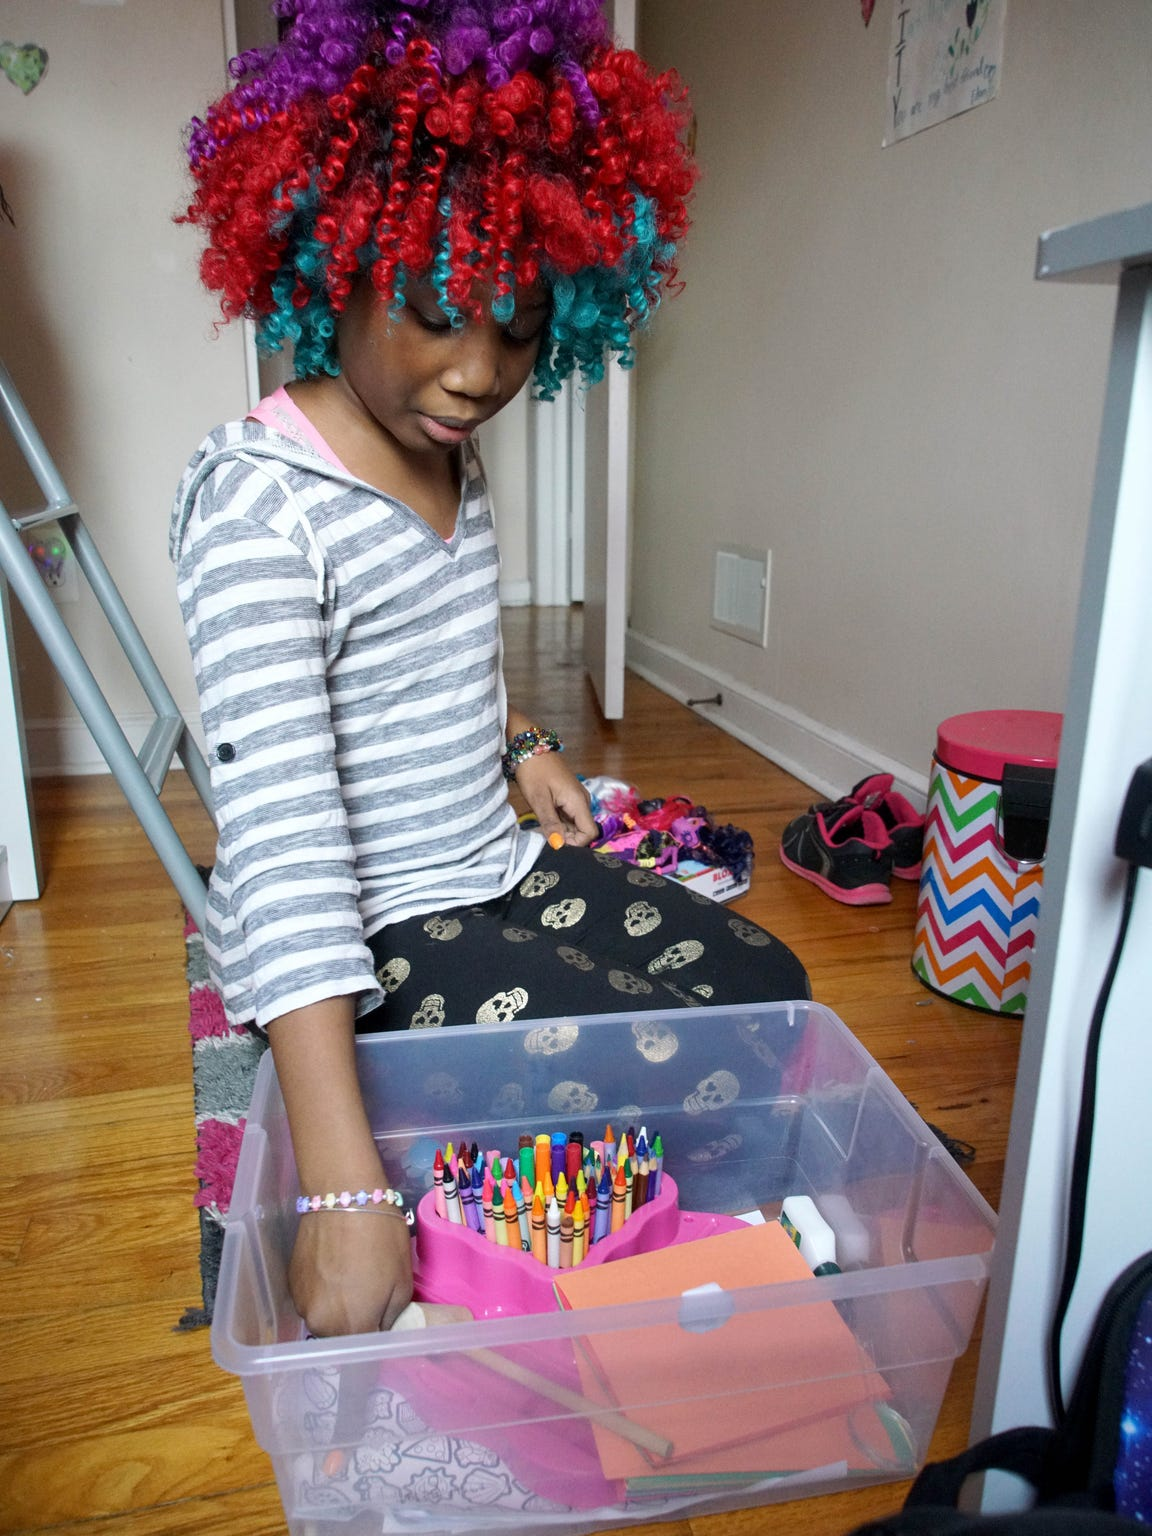 Trinity plays with toys in her room.